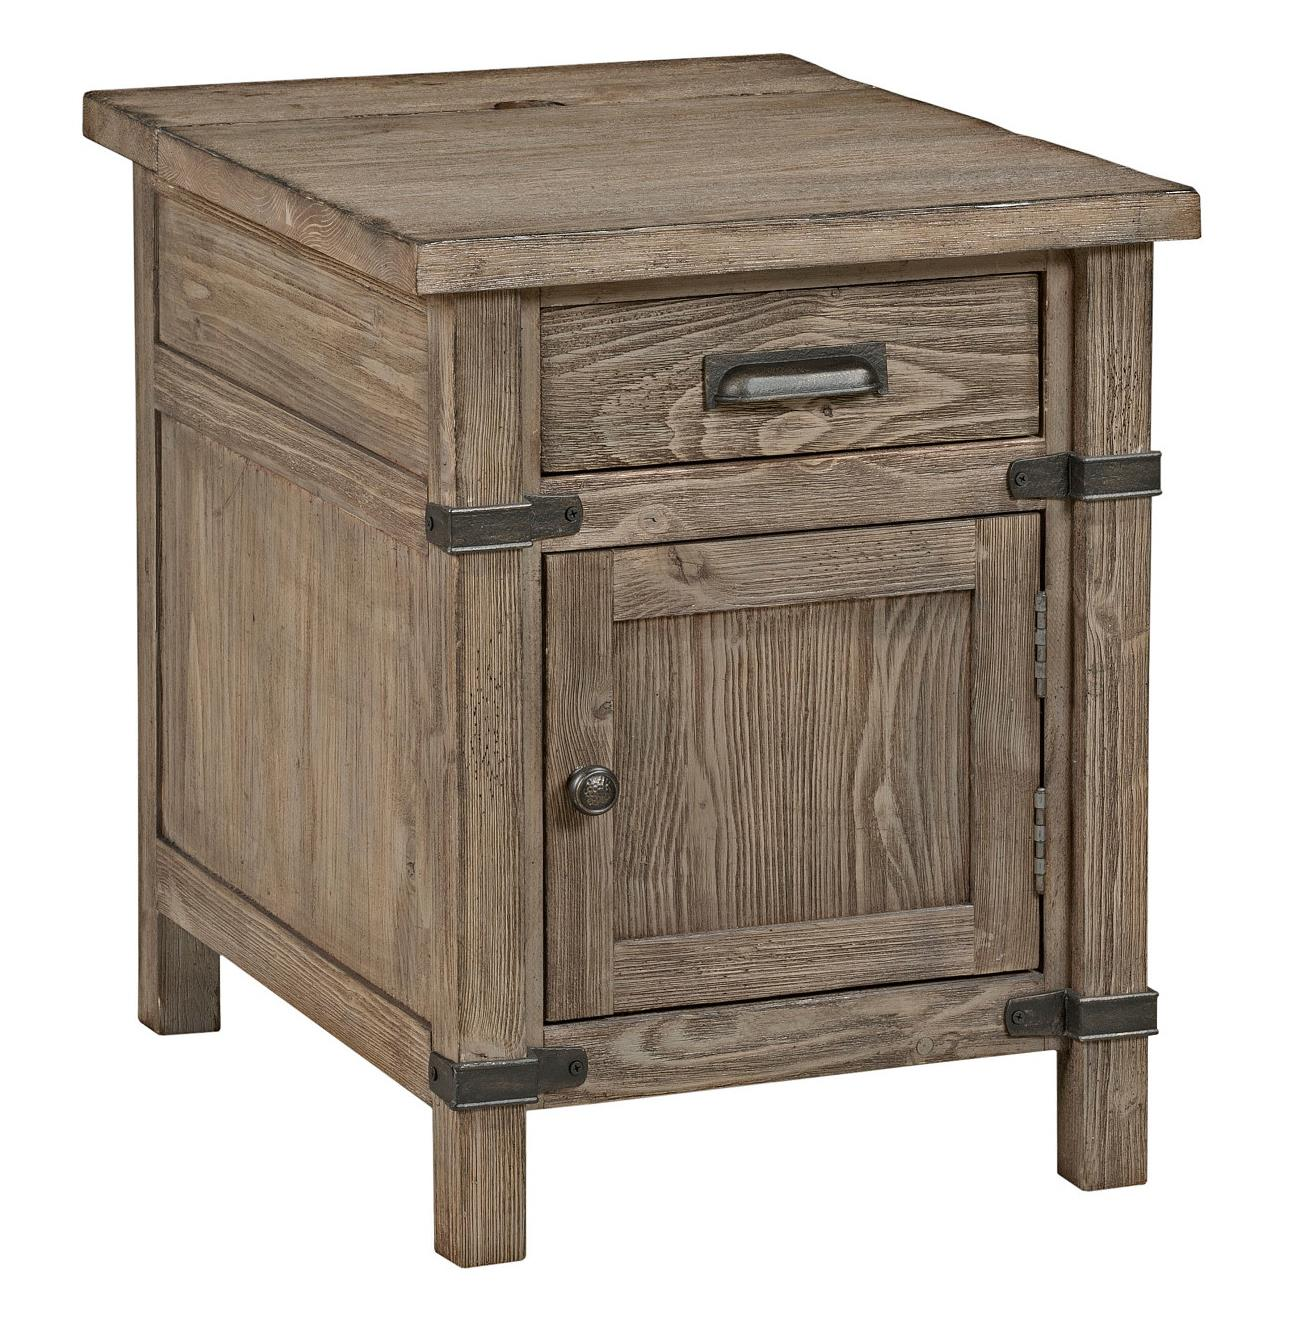 kincaid furniture foundry rustic weathered gray chairside products color wood accent table black bedroom long counter height barnwood coffee ideas wine rack red home accessories